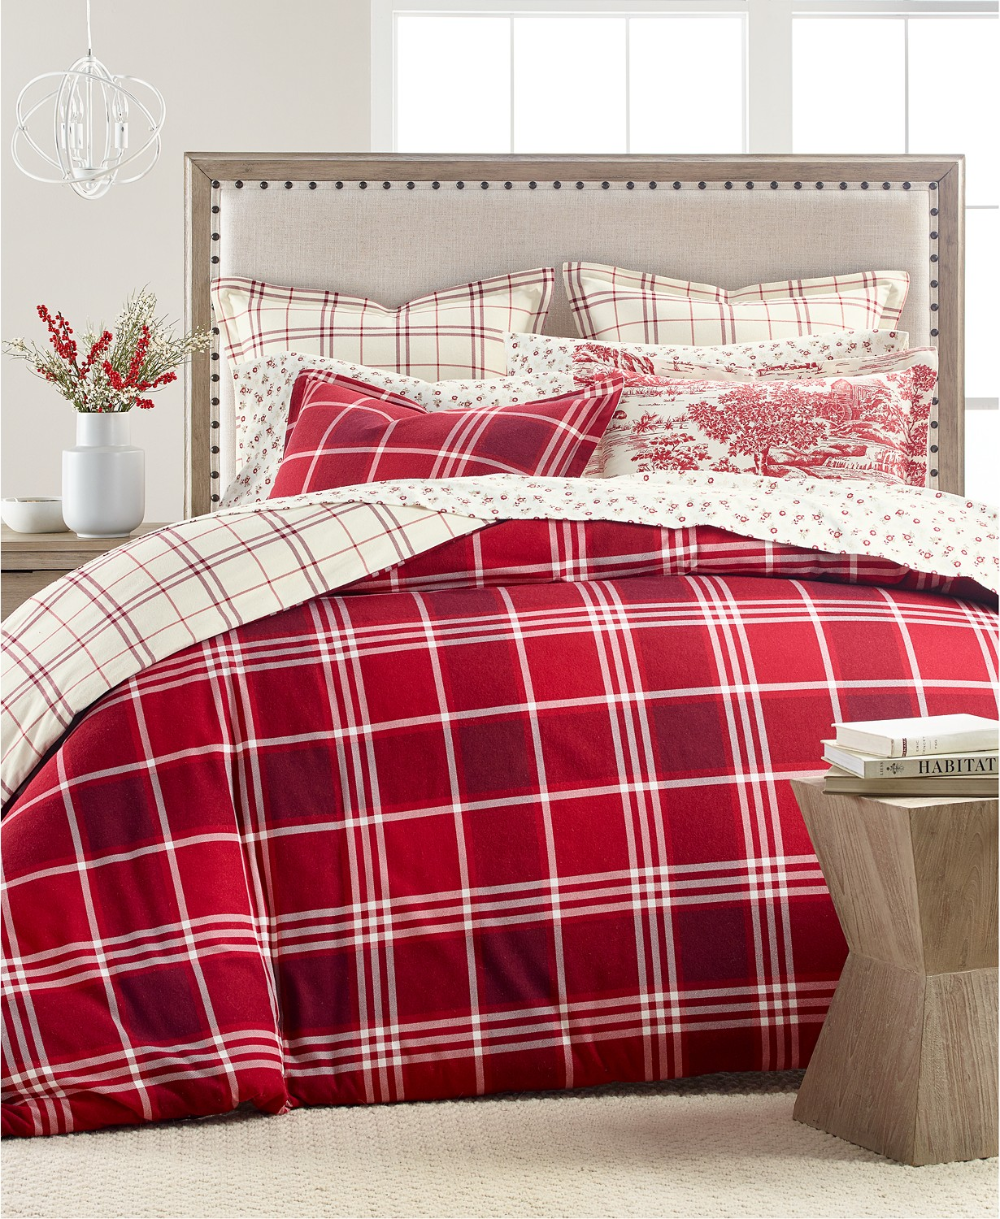 Martha Stewart Collection Ticking Plaid Flannel Bedding Collection Created For Macy S Reviews Bedding Col In 2020 Flannel Bedding Red Duvet Cover King Duvet Cover